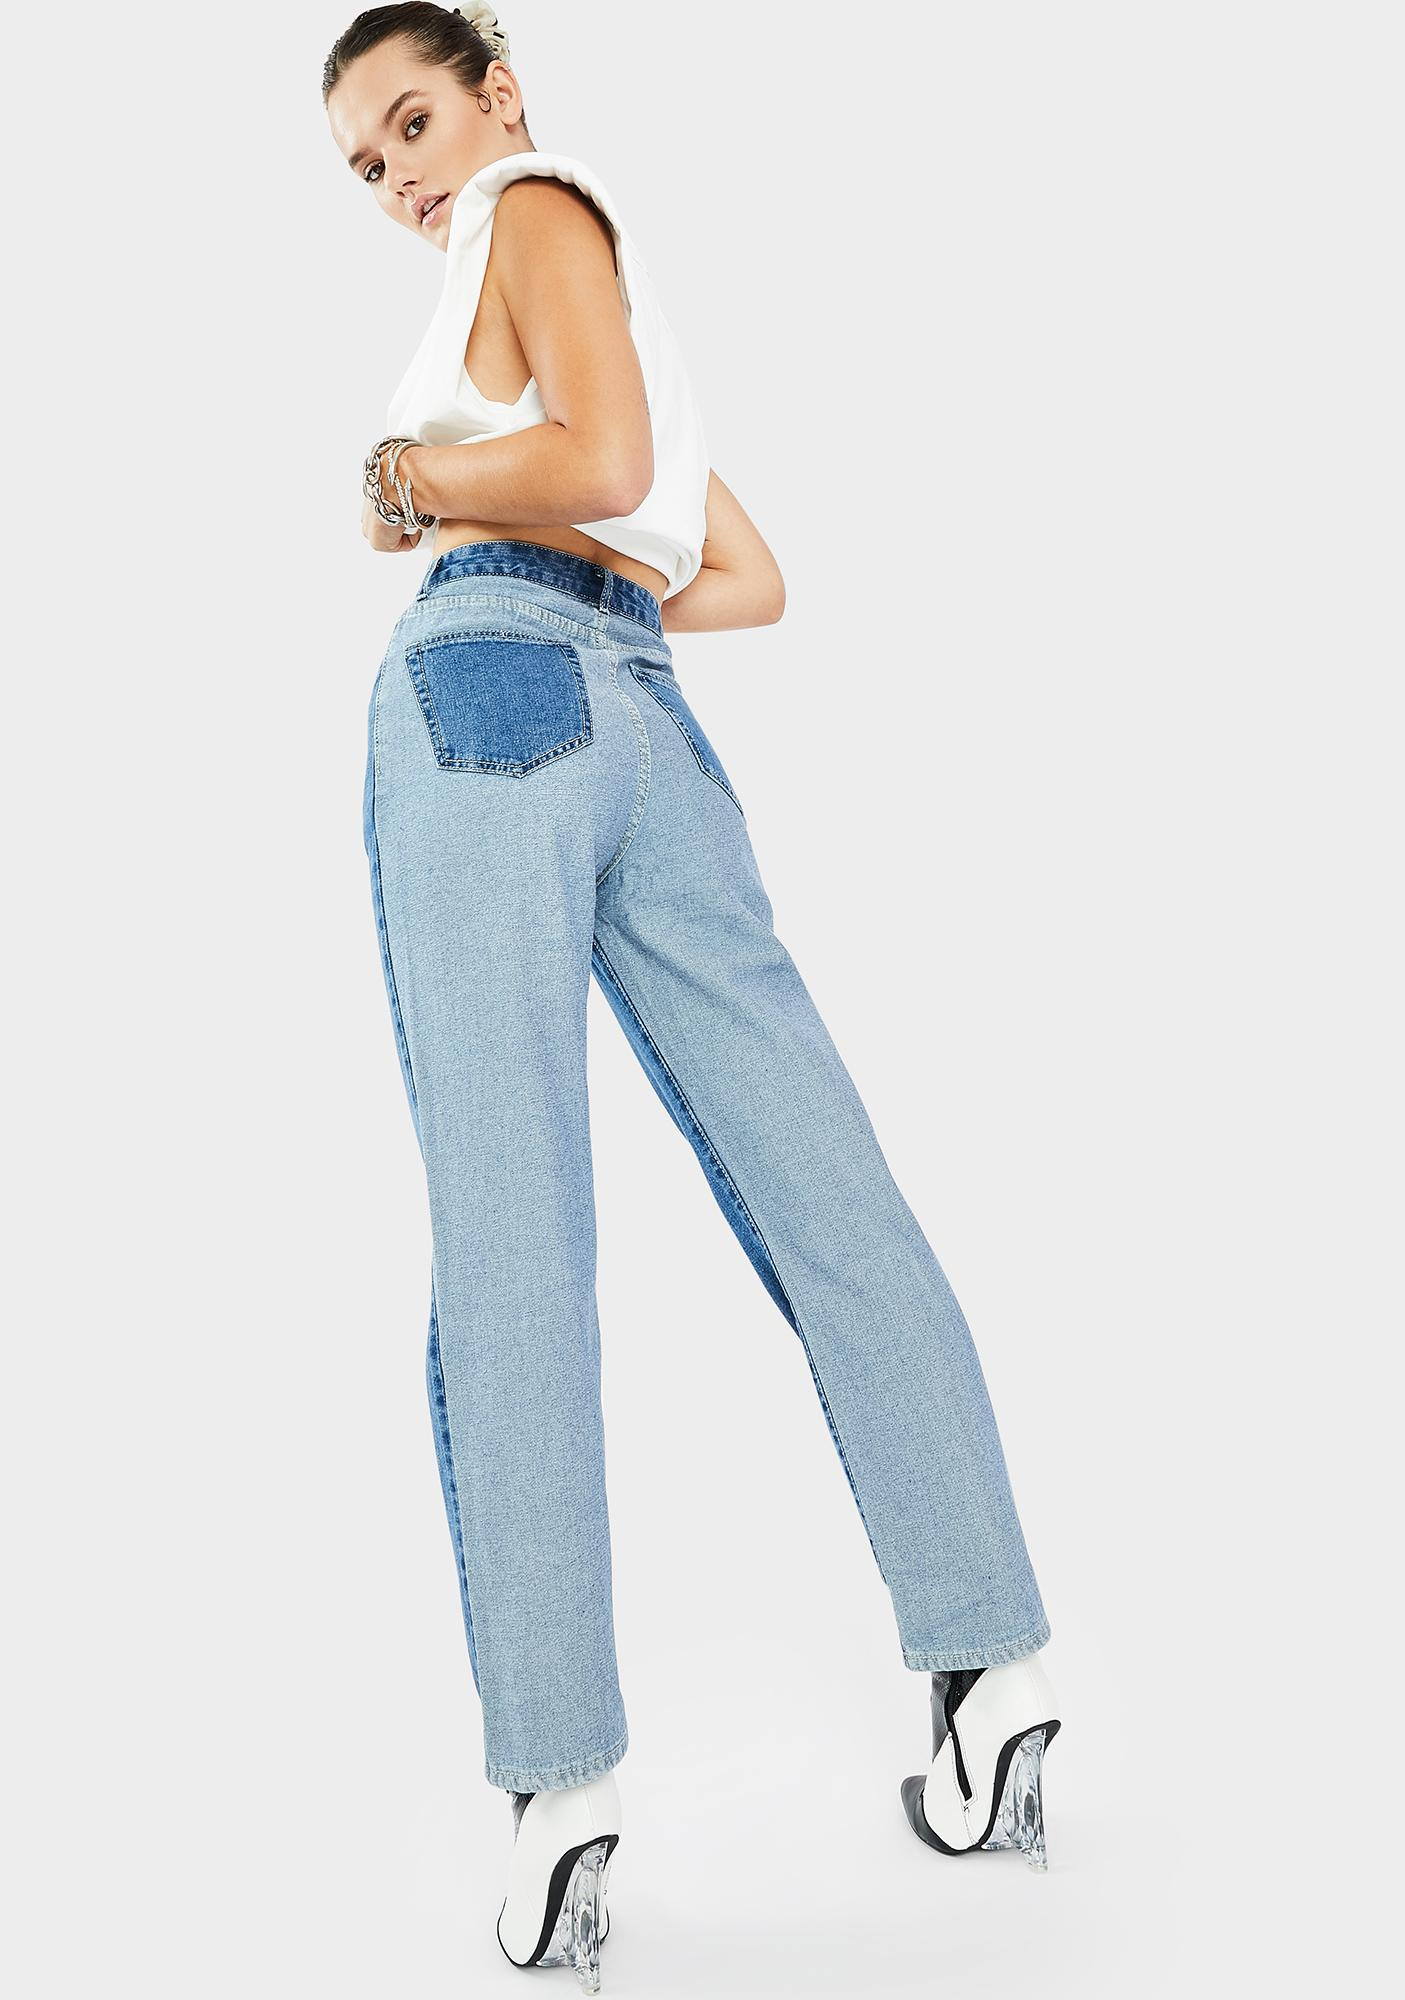 THE KRIPT Two Tone High Rise Jeans